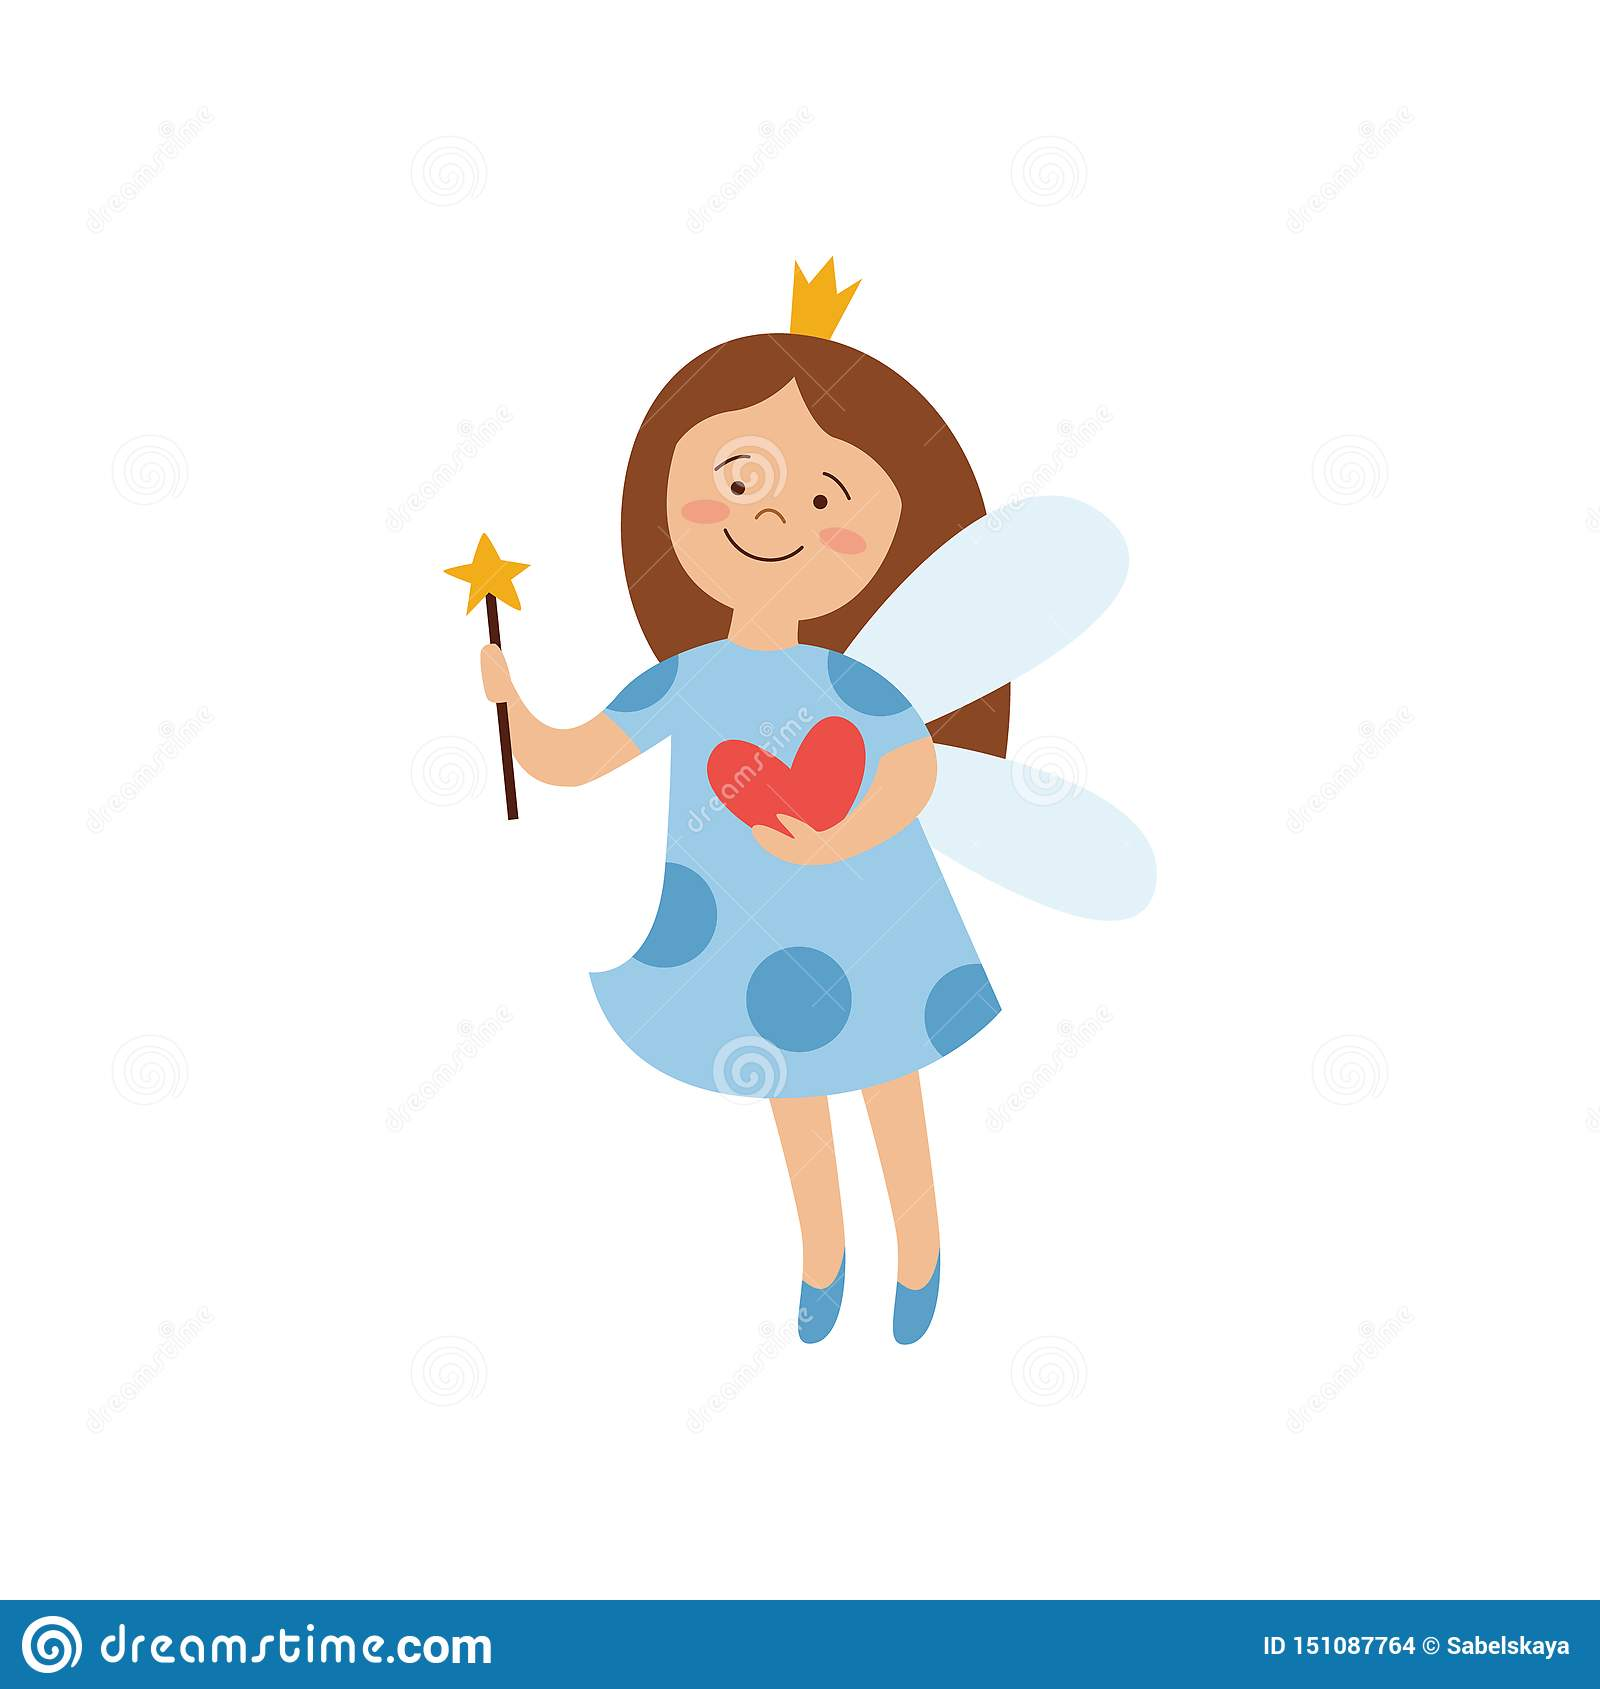 Heart Wings Crown Cartoon Stock Illustrations 331 Heart Wings Crown Cartoon Stock Illustrations Vectors Clipart Dreamstime Cartoon king wearing crown and mantle. https www dreamstime com magic fairy princess blue hospital gown holding heart cute little girl wings crown star wand fantasy cartoon image151087764